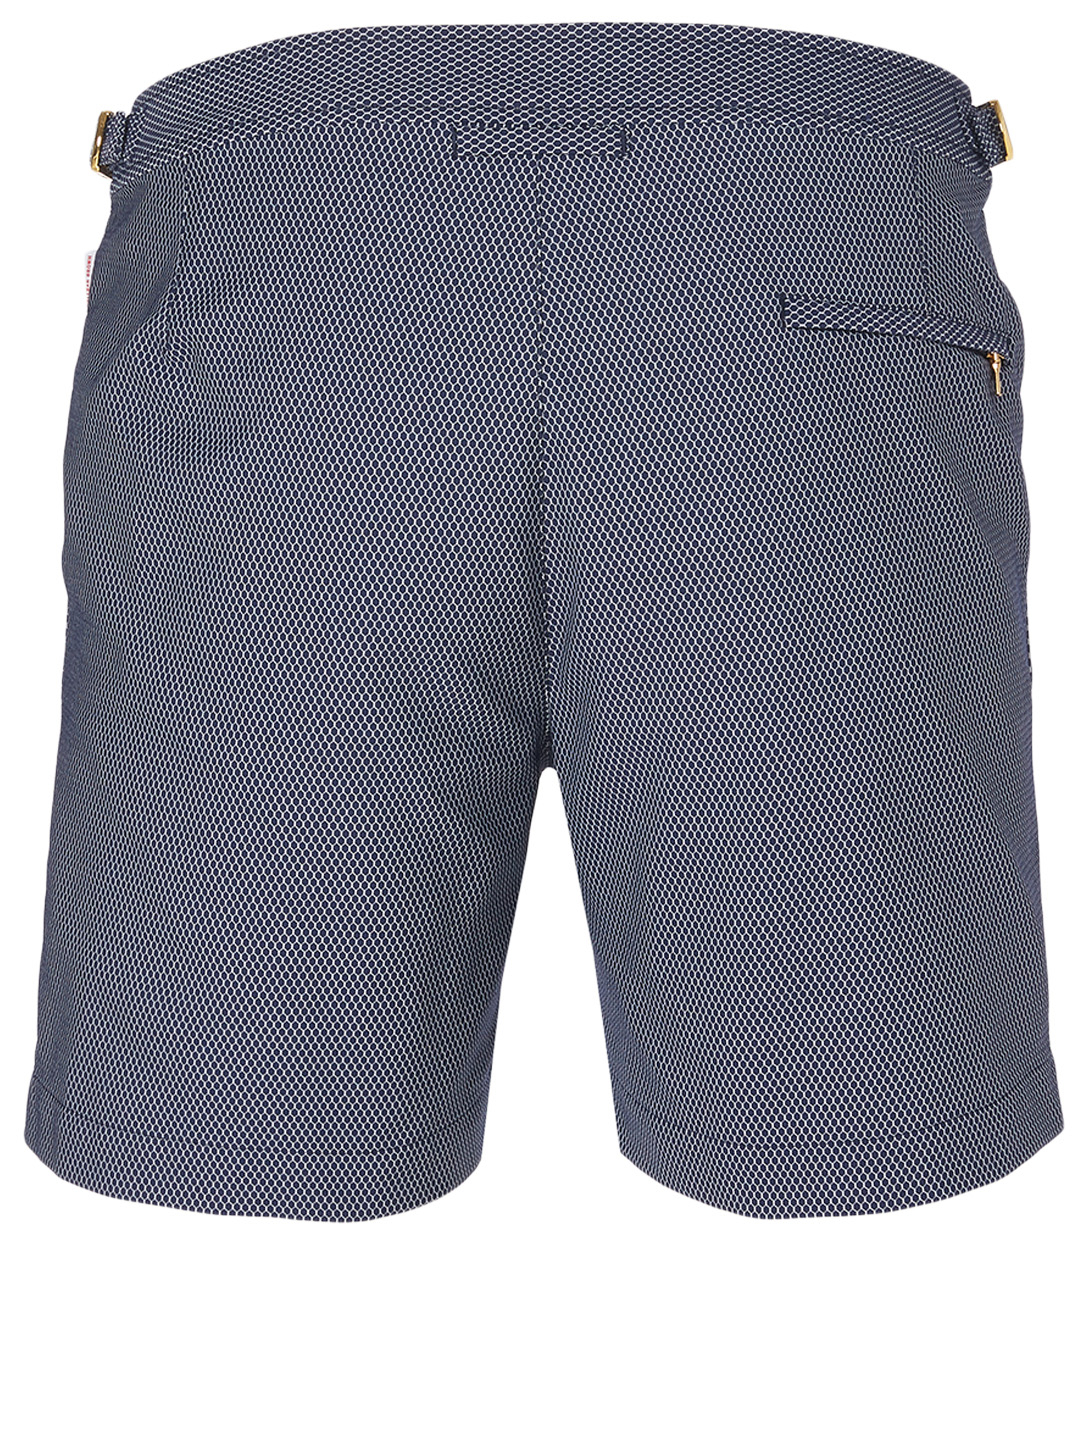 ORLEBAR BROWN Bulldog X Honeycomb Smarter Classic Swim Shorts Men's Blue